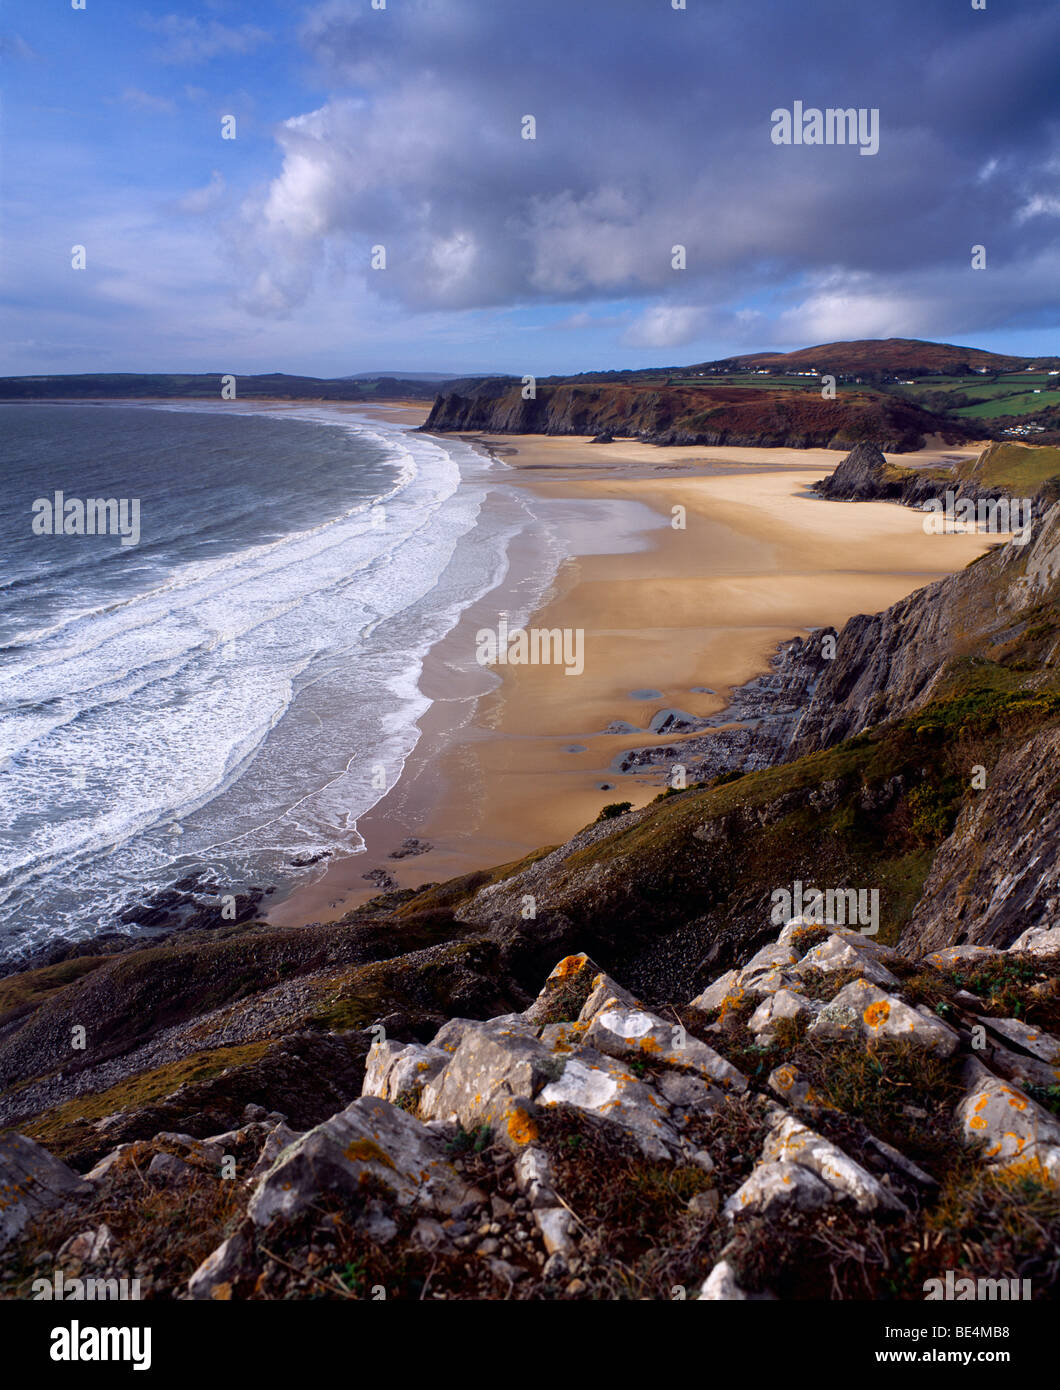 Threecliff Bay on the Gower Coast looking towards the village of Penmaen and Great Tor, behind which lies the beach - Stock Image